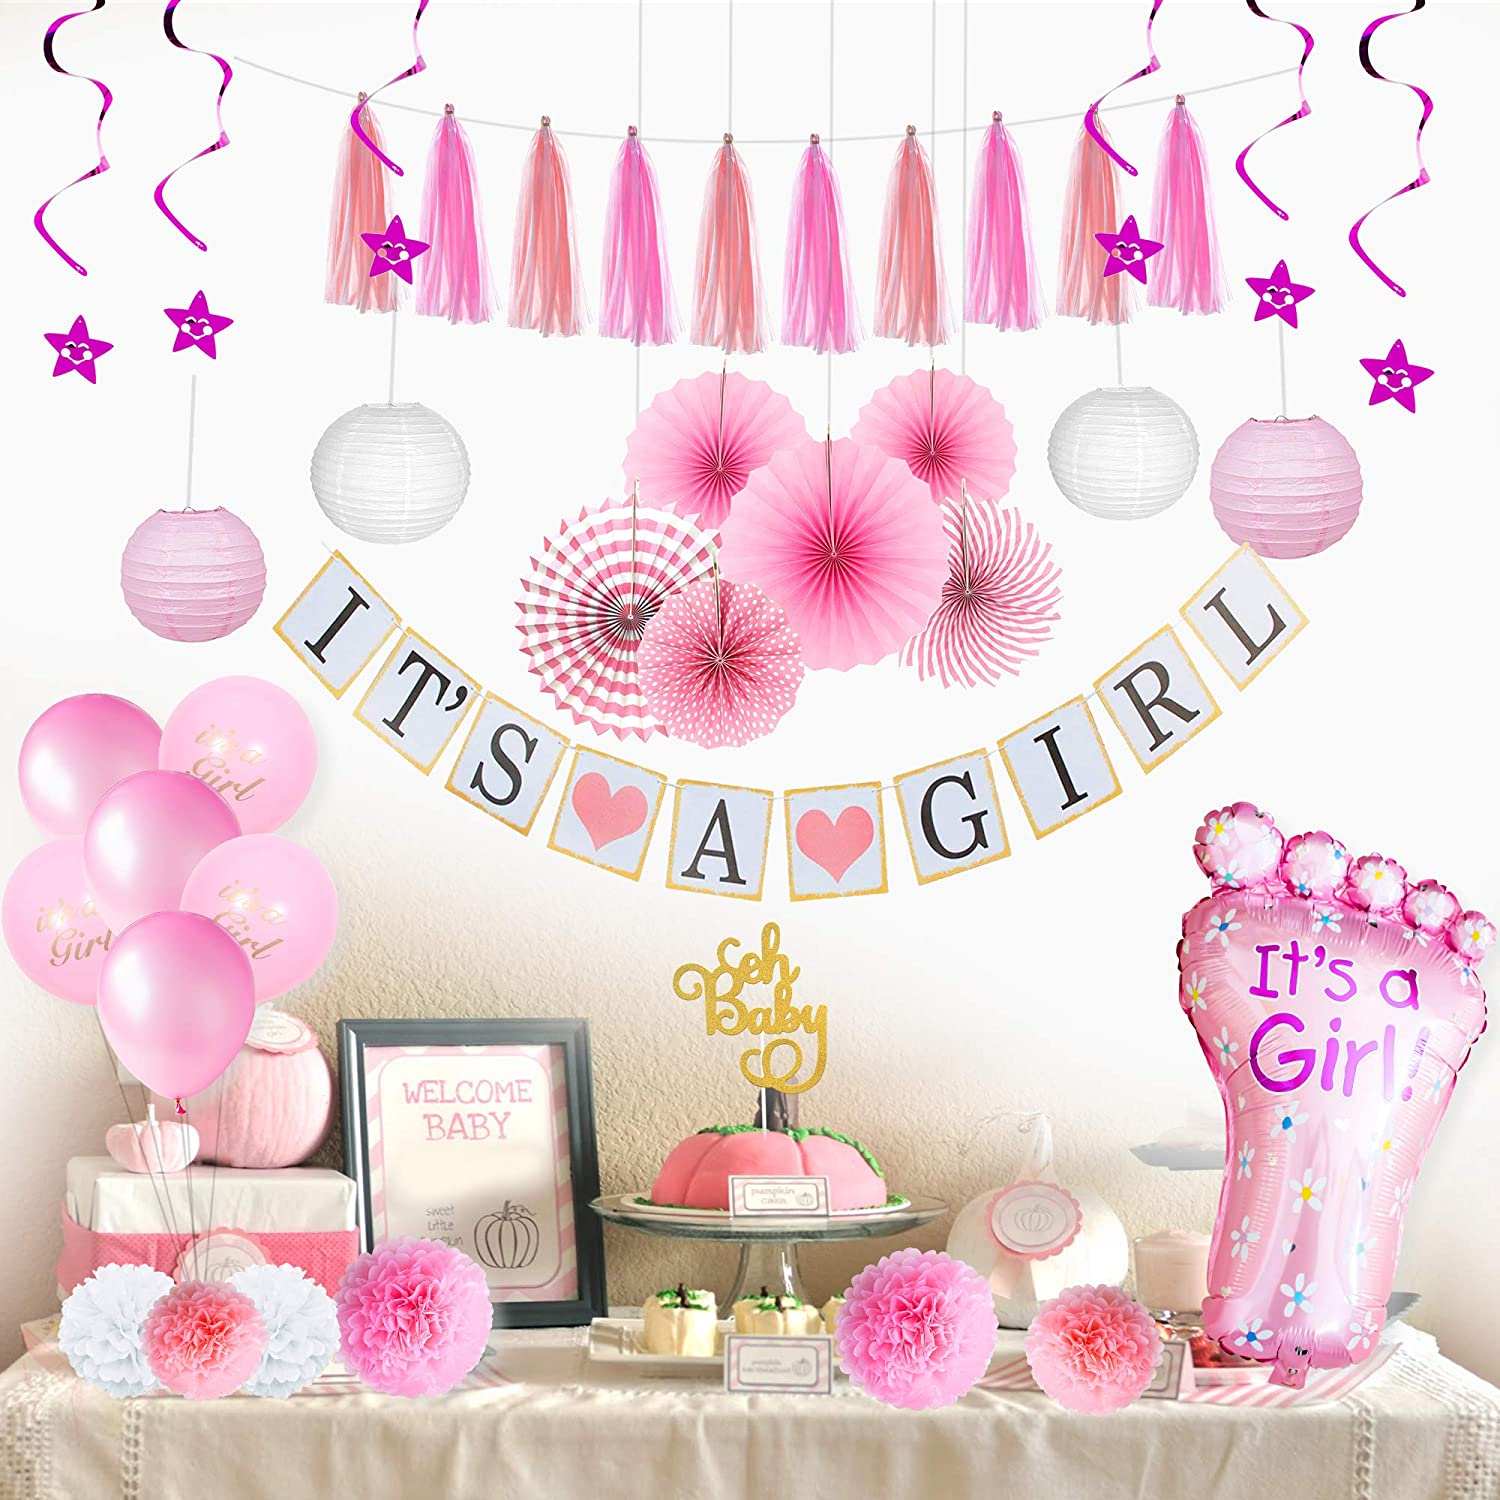 Amazon Com Baby Girl Baby Shower Decorations For Girl I Baby Shower For Girl Baby Shower Decorations I Baby Shower Girl Decorations I Its A Girl Baby Shower Decorations I Baby Girl Shower